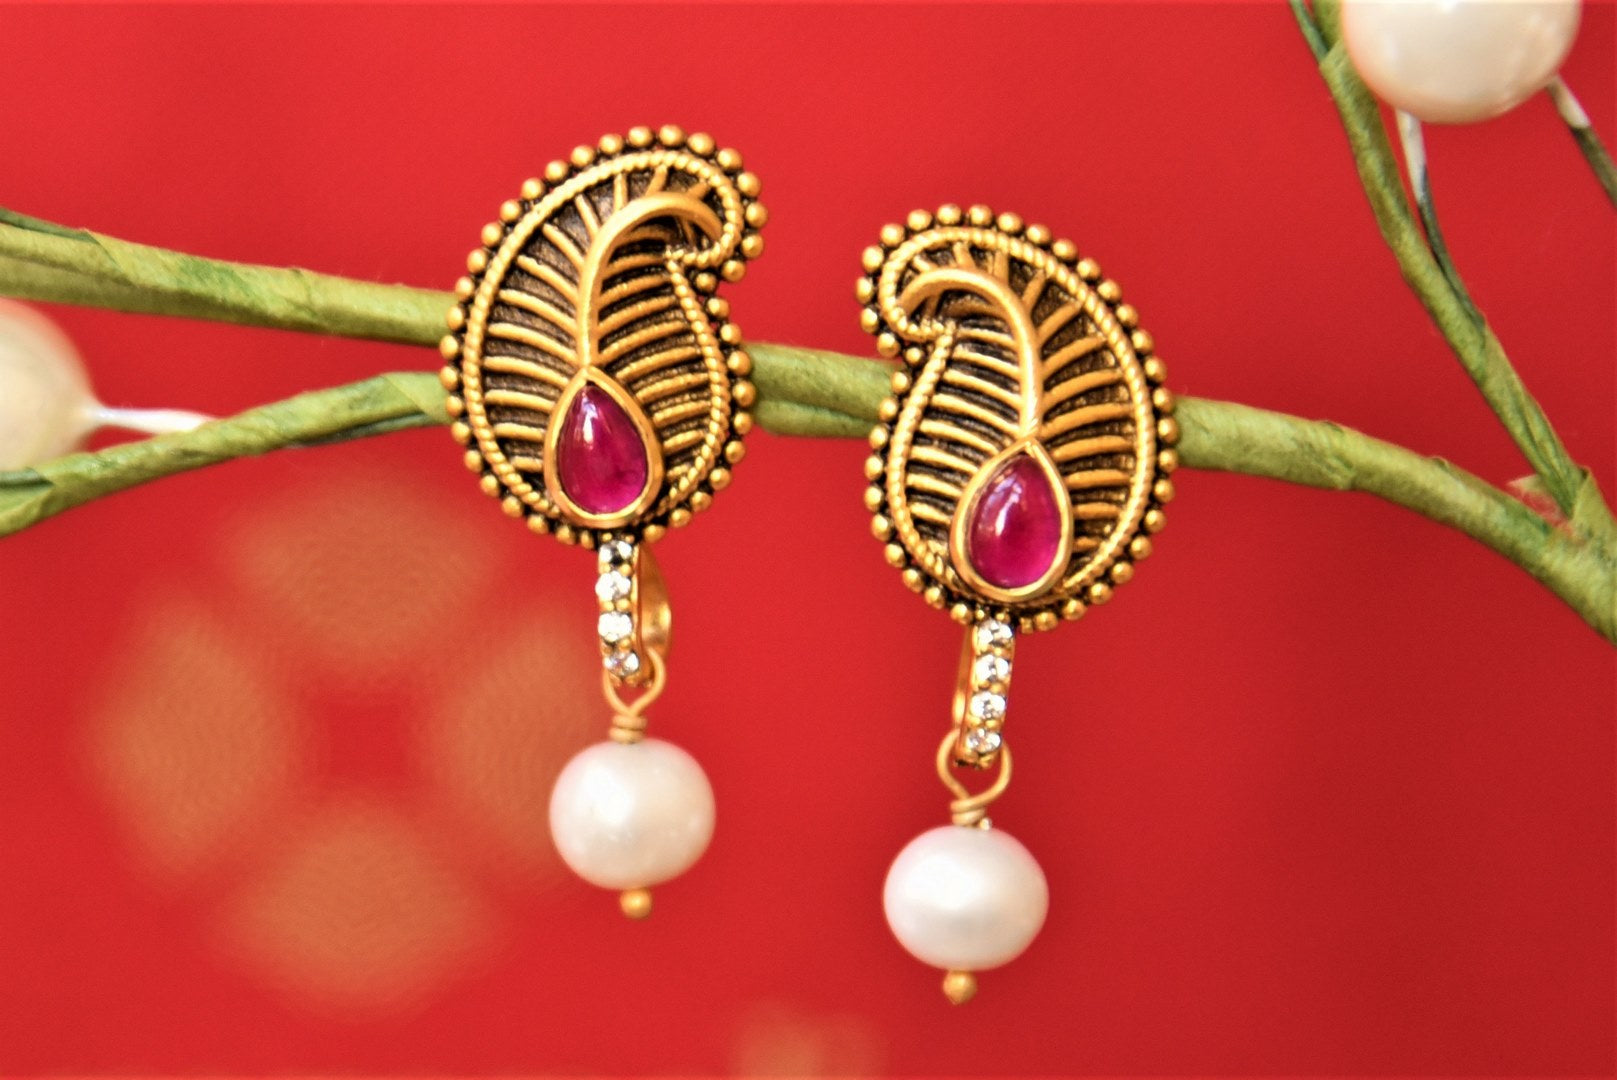 Shop Amrapali silver gold plated ambi earrings online in USA with pearl drop. Complete your traditional style with exquisite silver gold plated jewelry from Pure Elegance Indian fashion store in USA.-front